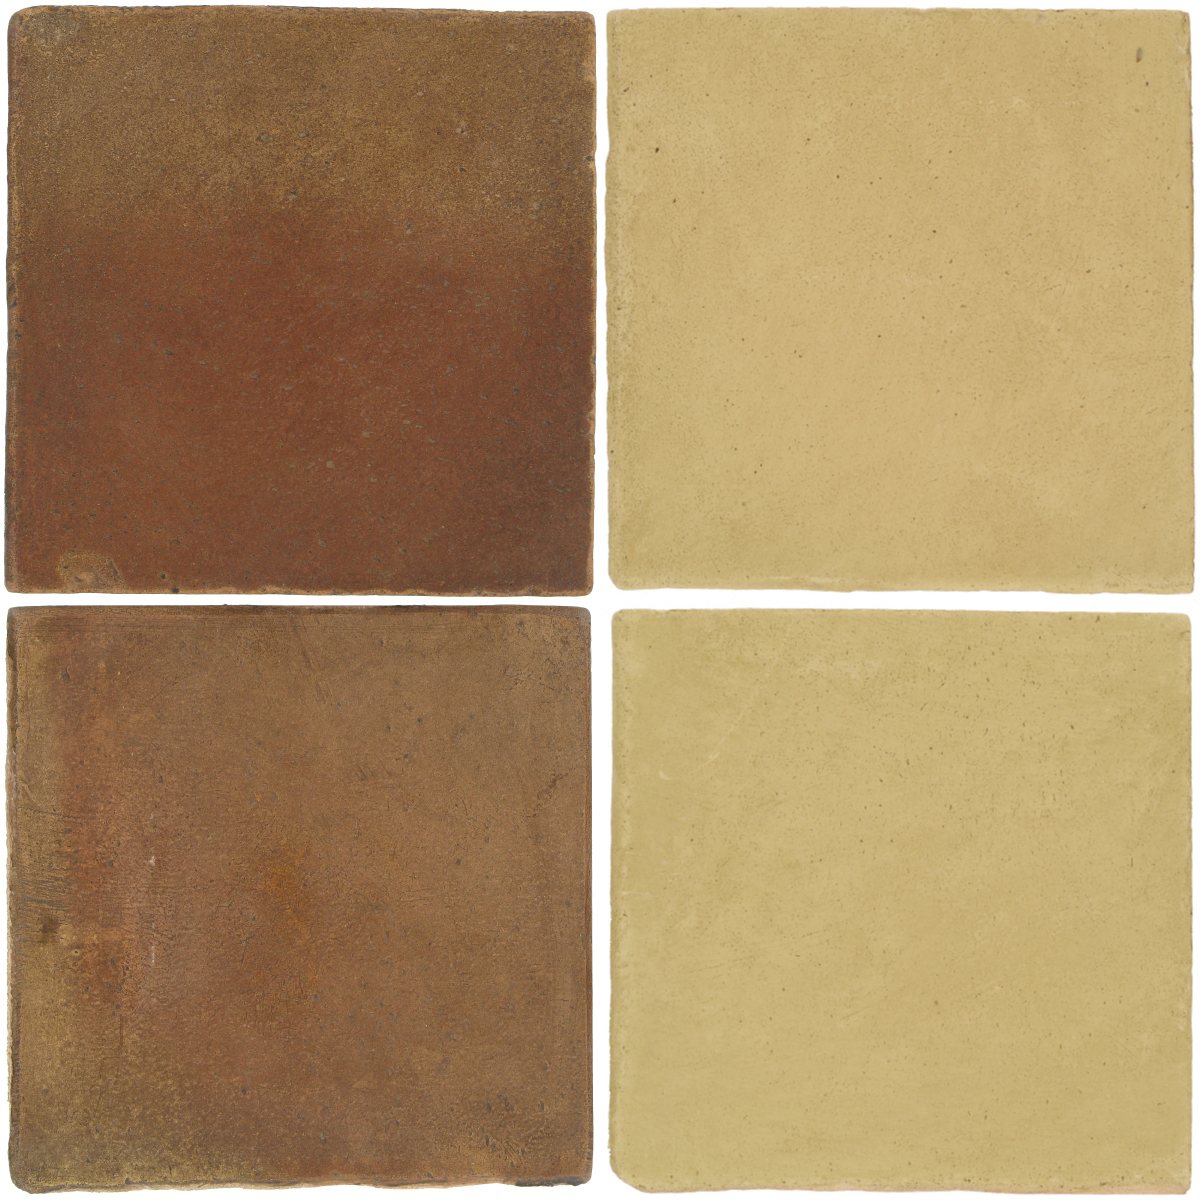 Pedralbes Antique Terracotta  2 Color Combinations  OHS-PSCM Camel Brown + OHS-PGGW Golden W.